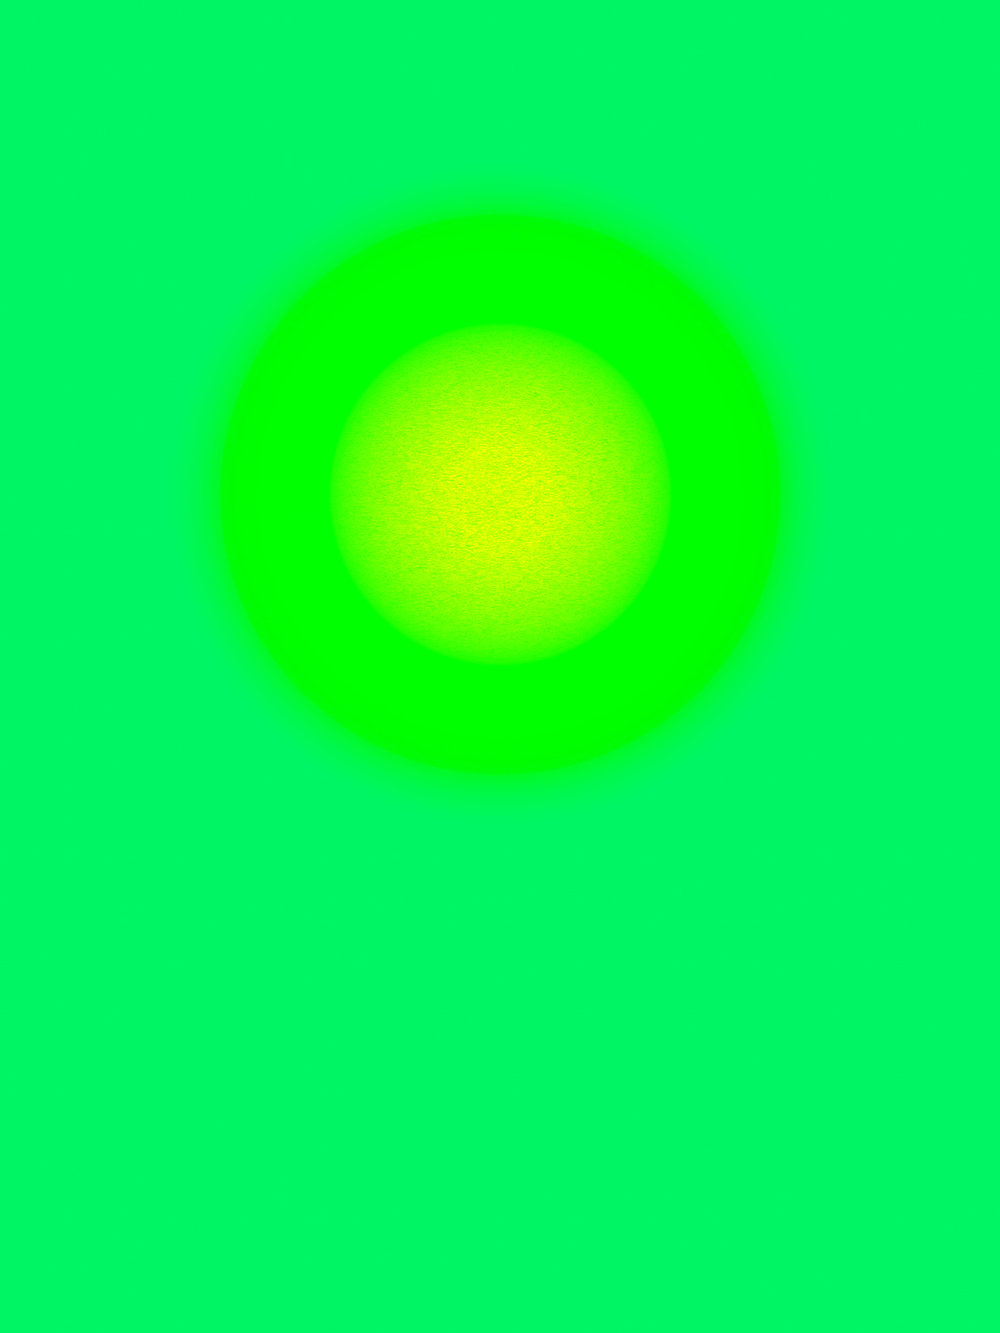 aapo nikkanen abstract too green.jpg